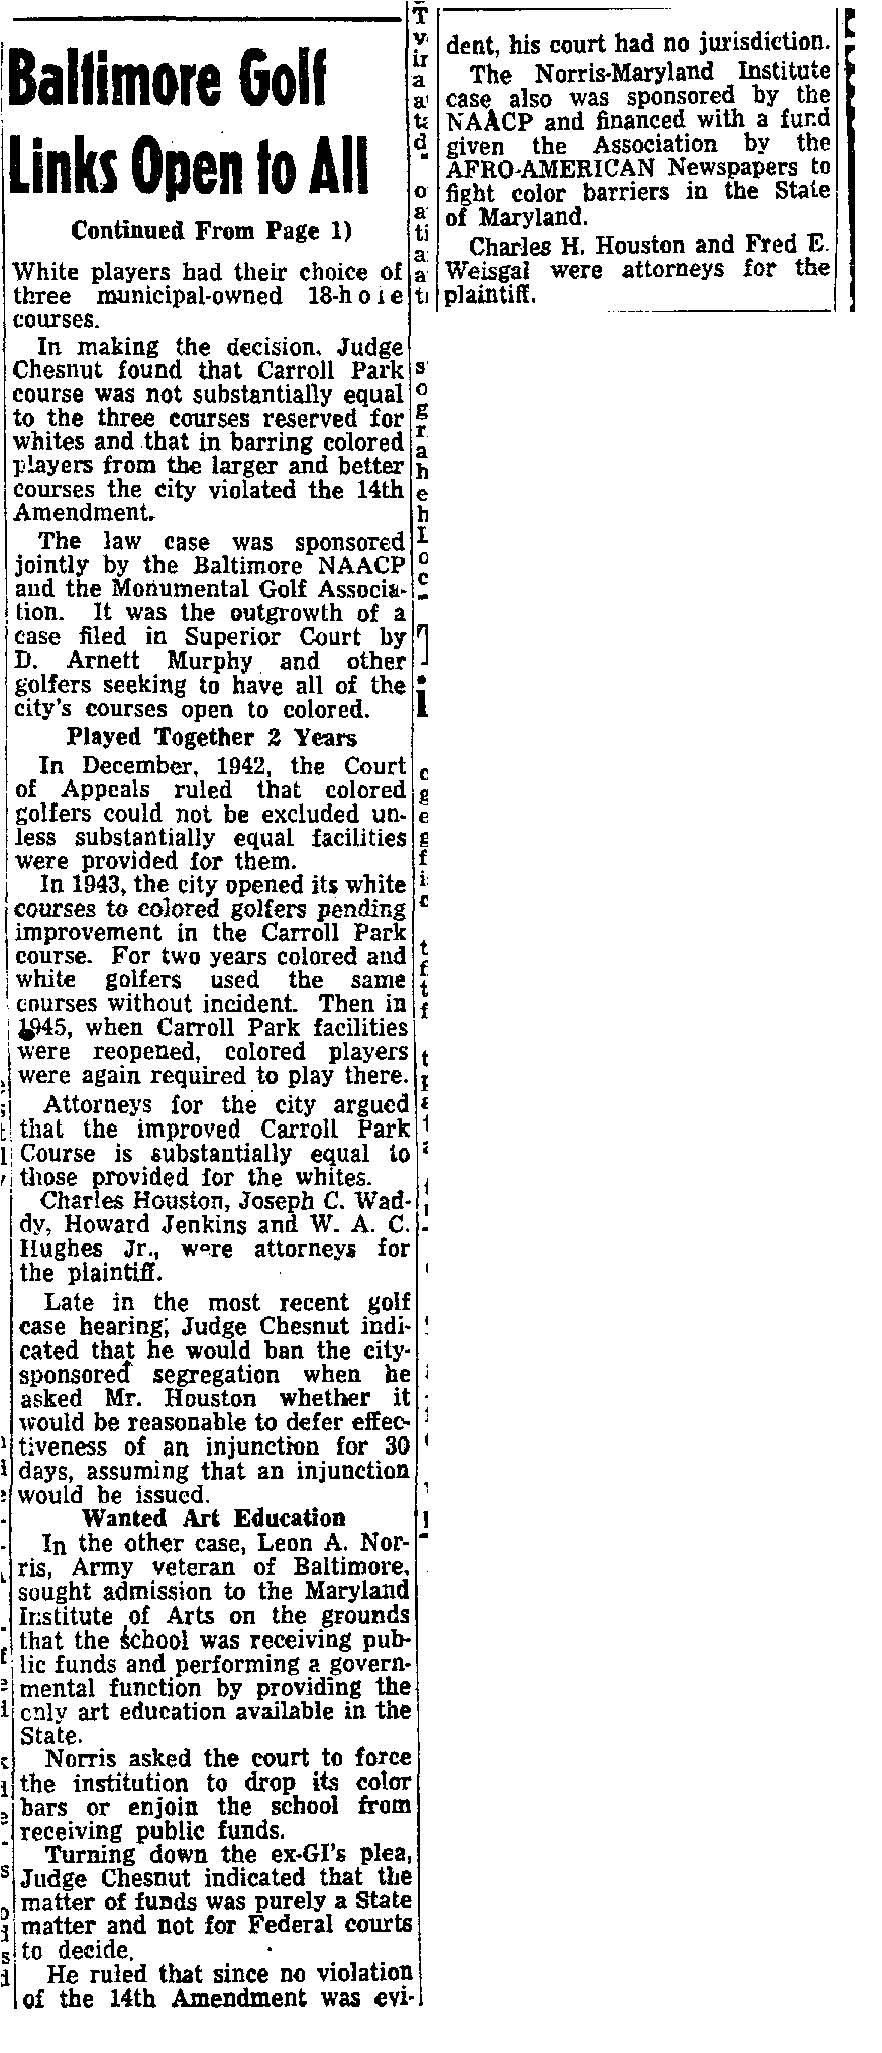 1948-6-26-Baltimore_Golf_Links_Open_to_A_Page_2.jpg